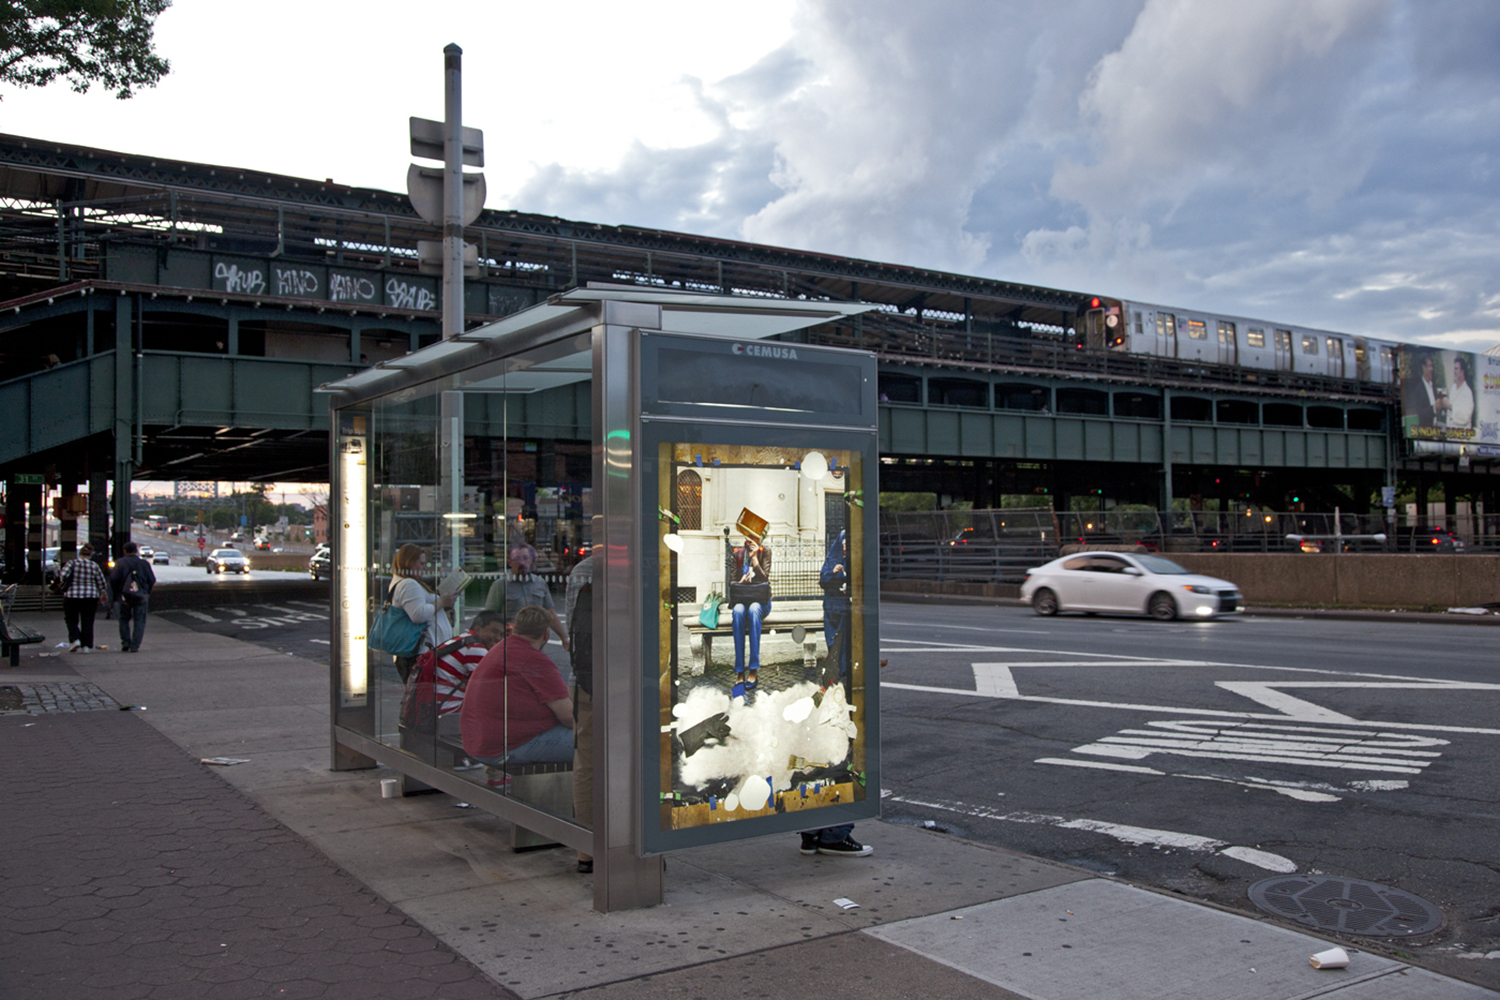 Bus Shelter by MatthewBrandt.com